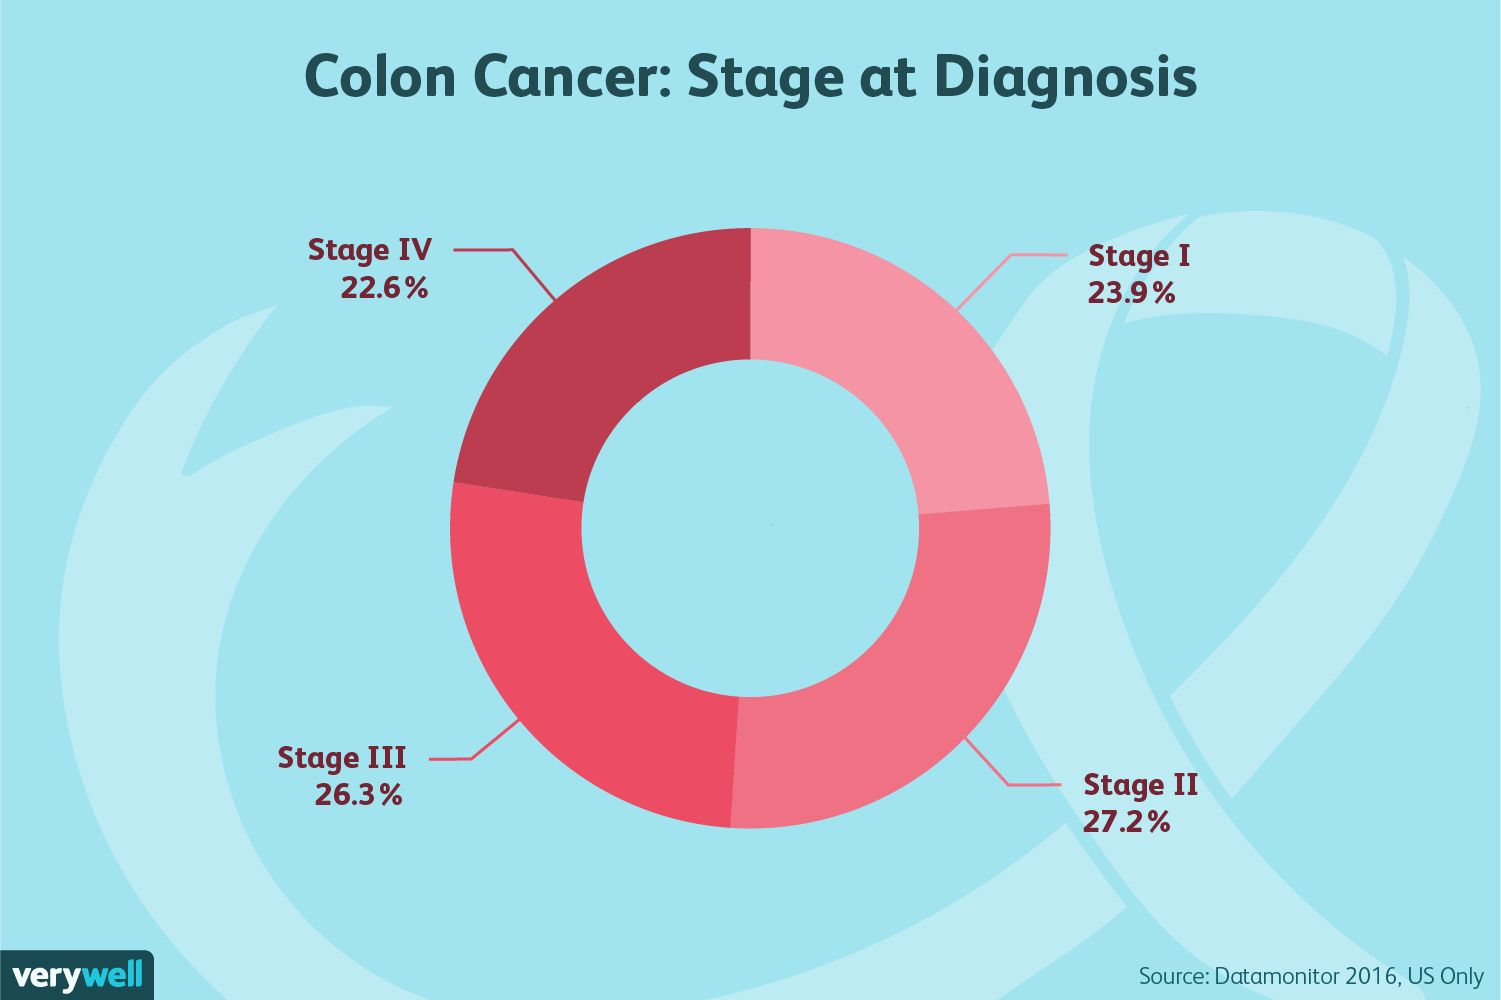 Diagnosing Colon Cancer